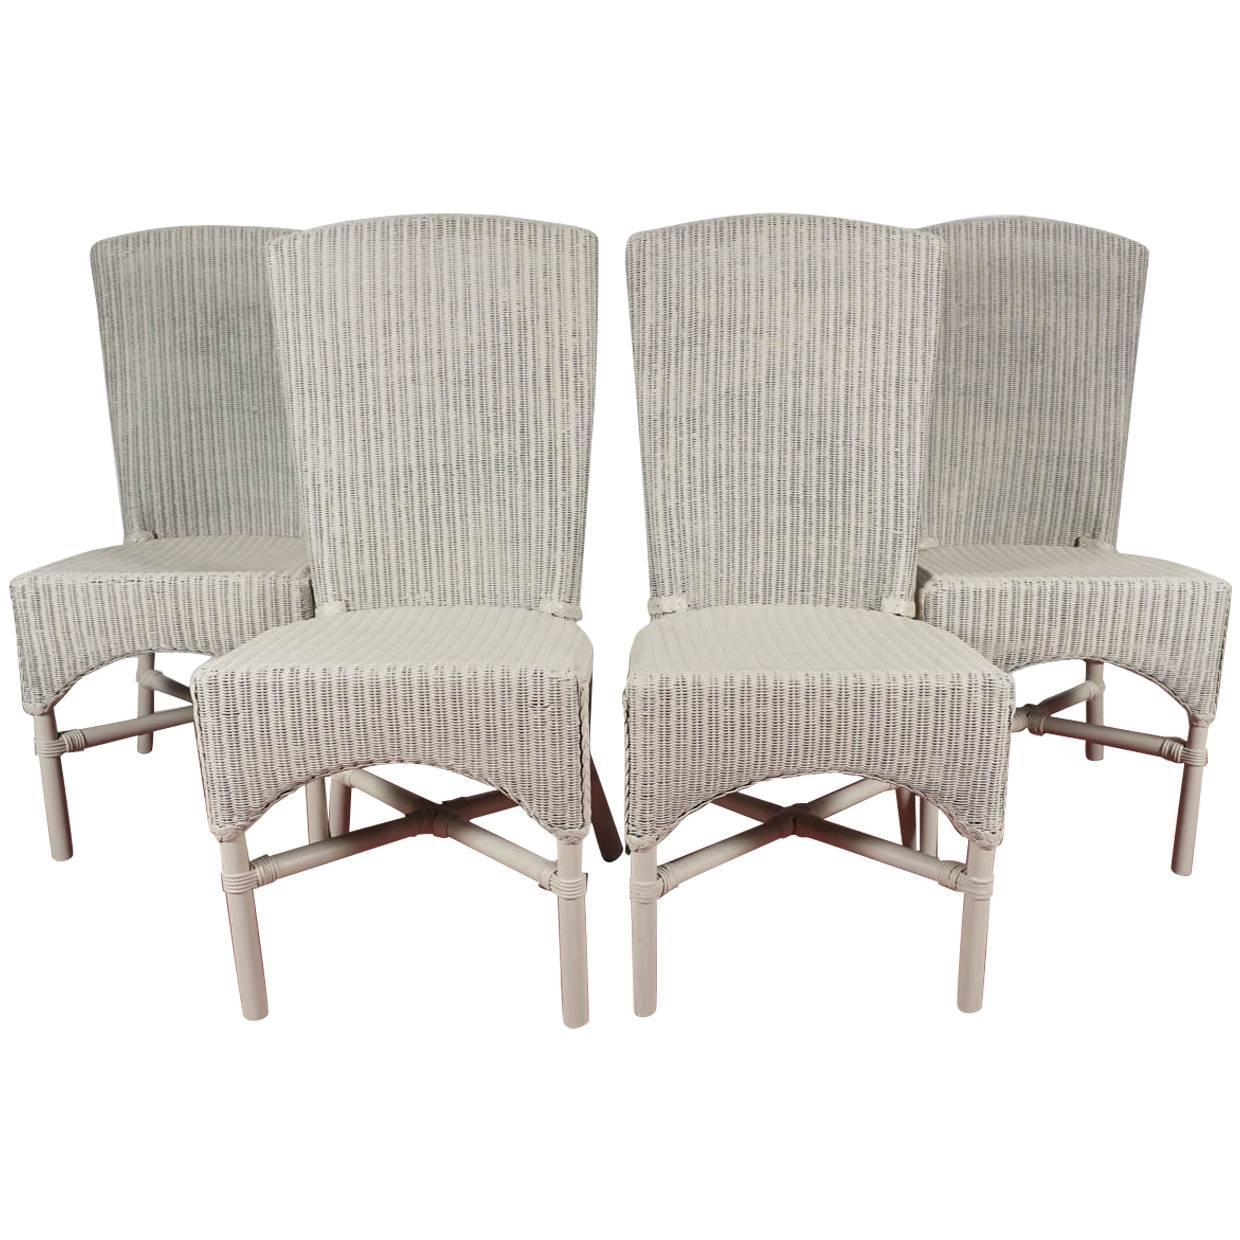 wicker dining chair frank lloyd wright six vintage loom chairs for sale at